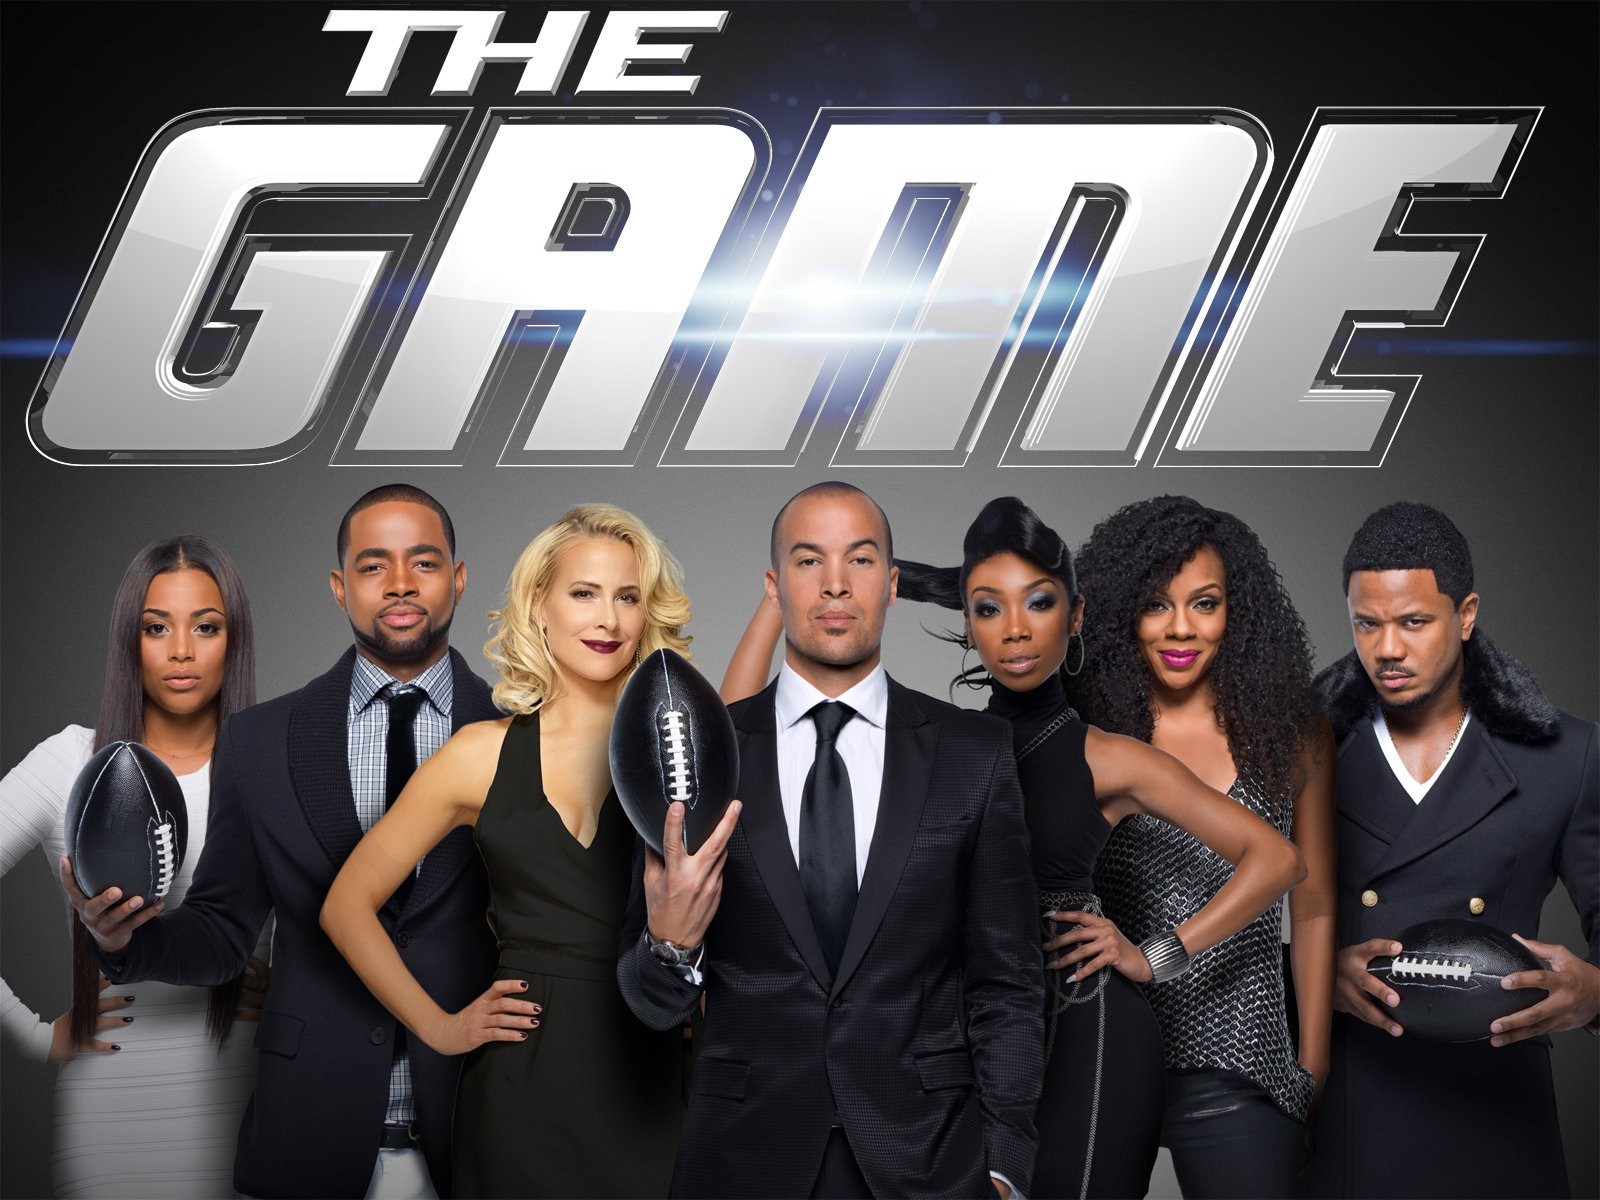 The game on bet season 8 roulette betting on black or red